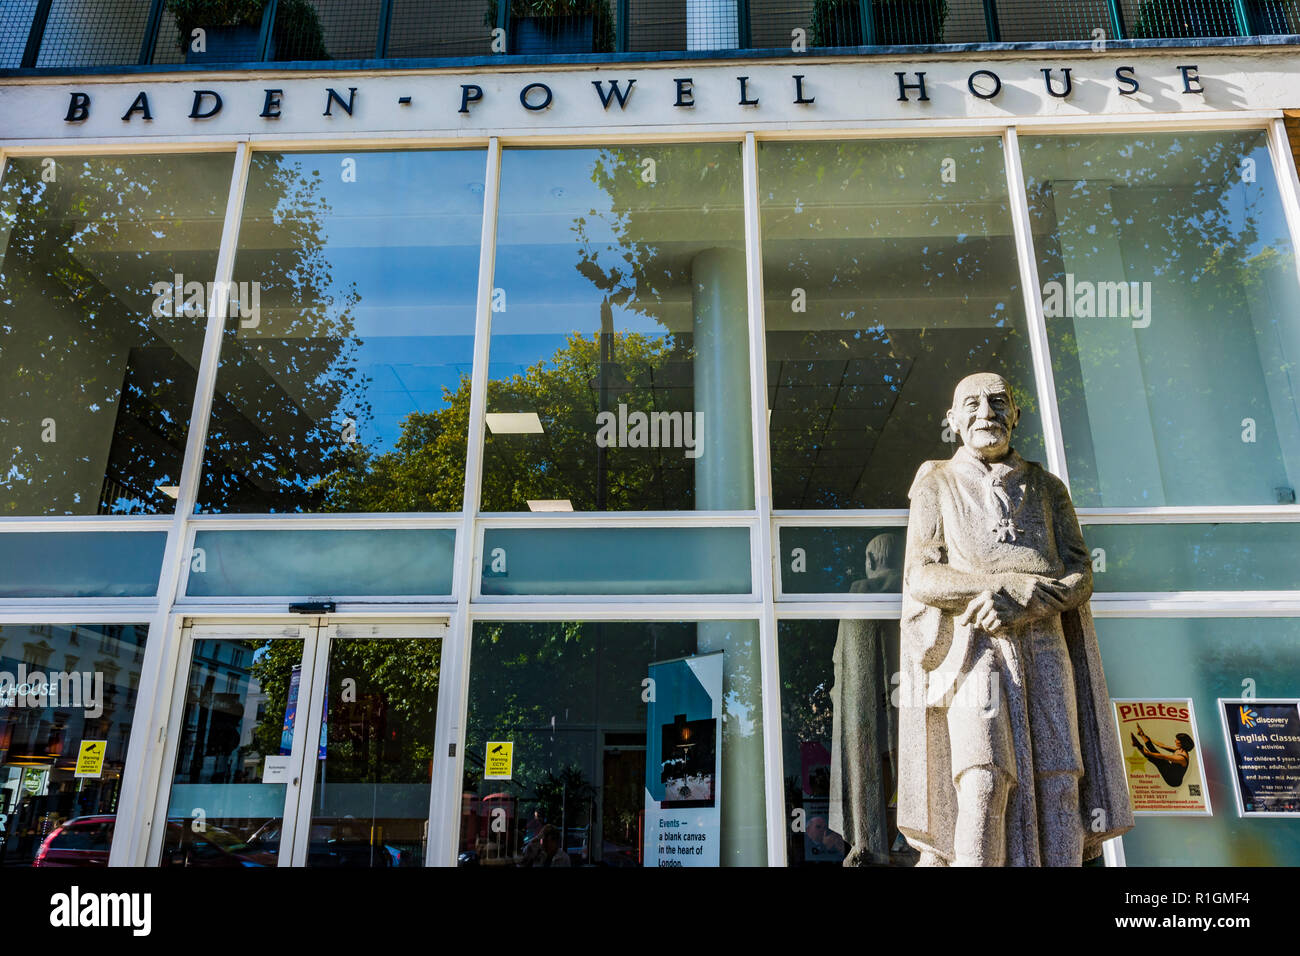 Baden-Powell House, colloquially known as B-P House, is a Scouting hostel and conference centre in South Kensington. London, England, United Kingdom - Stock Image